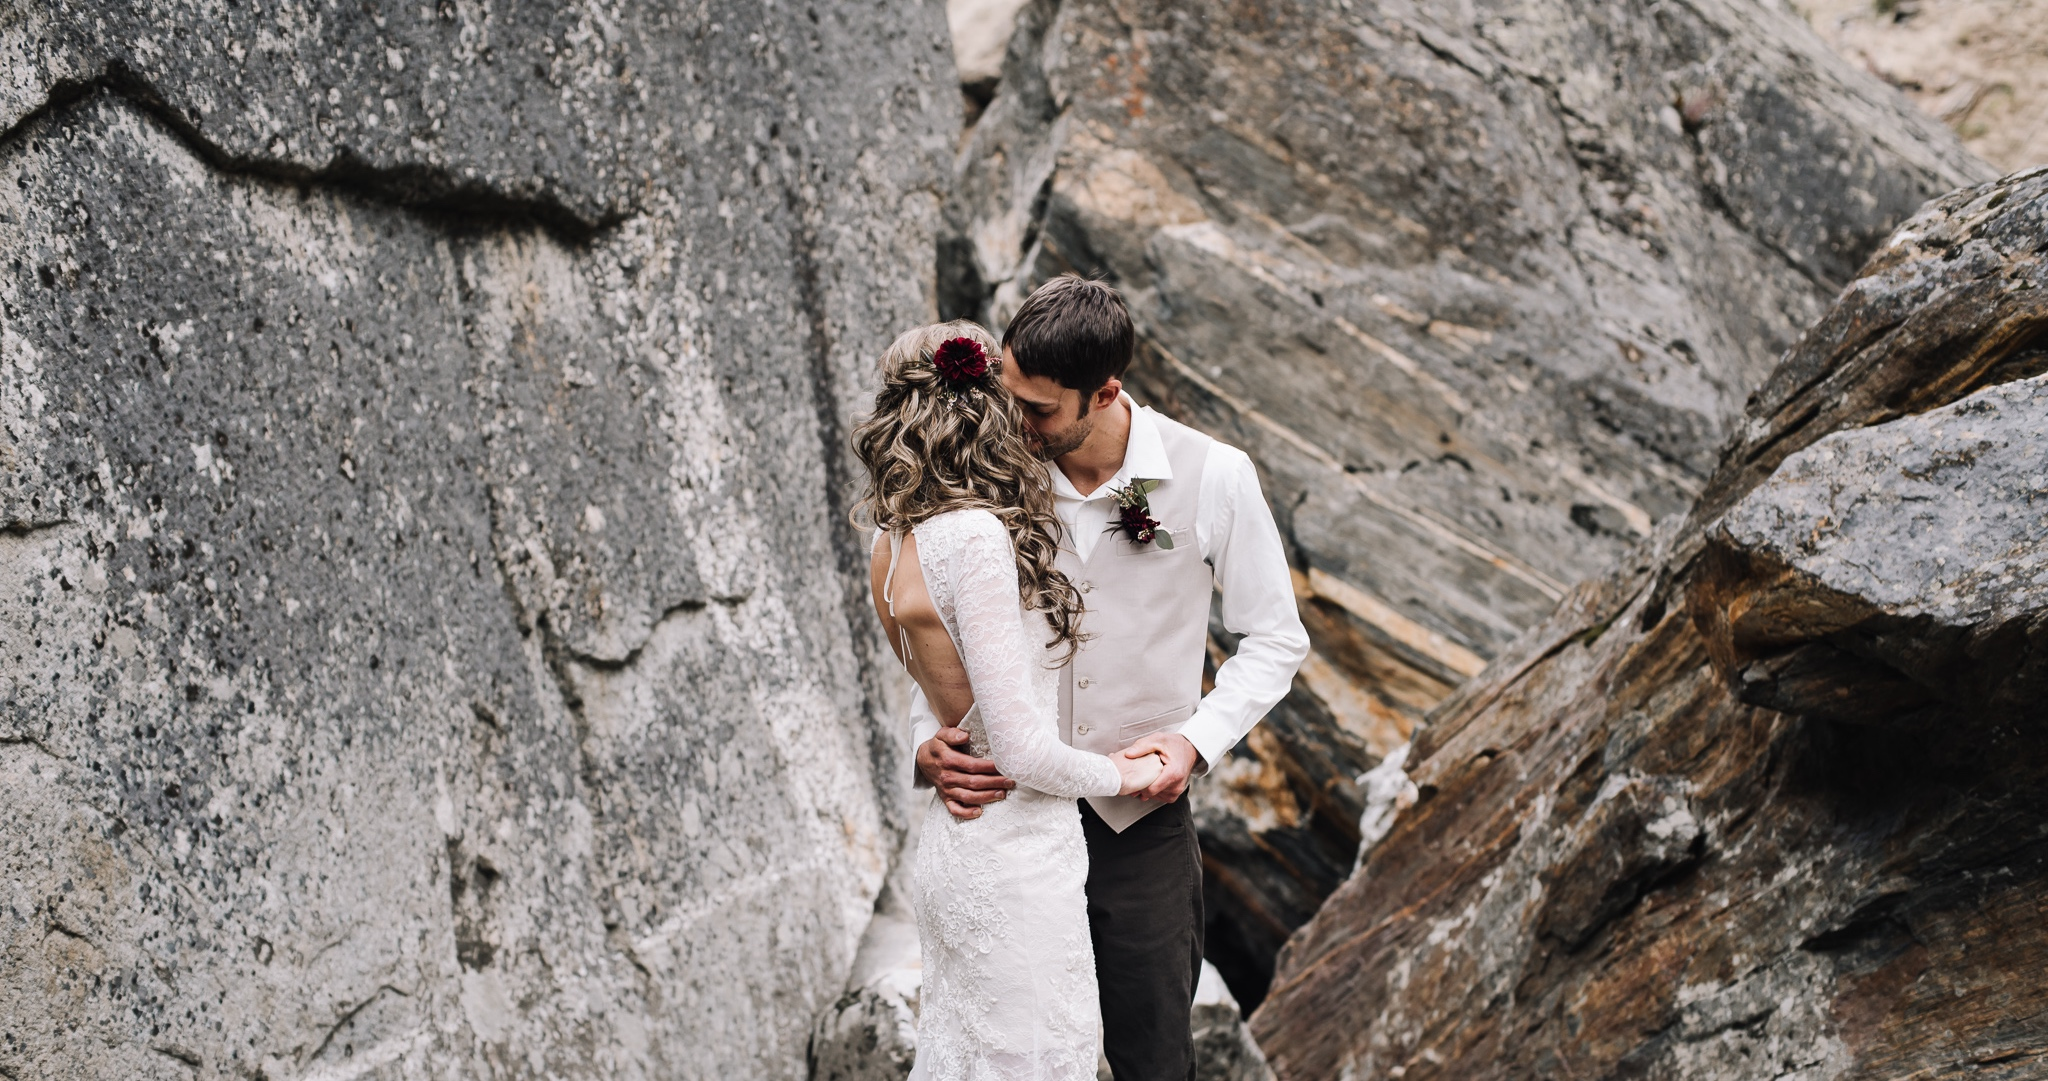 What is an Adventure elopement? - A wedding celebration in the great outdoors that is 100% focused on you